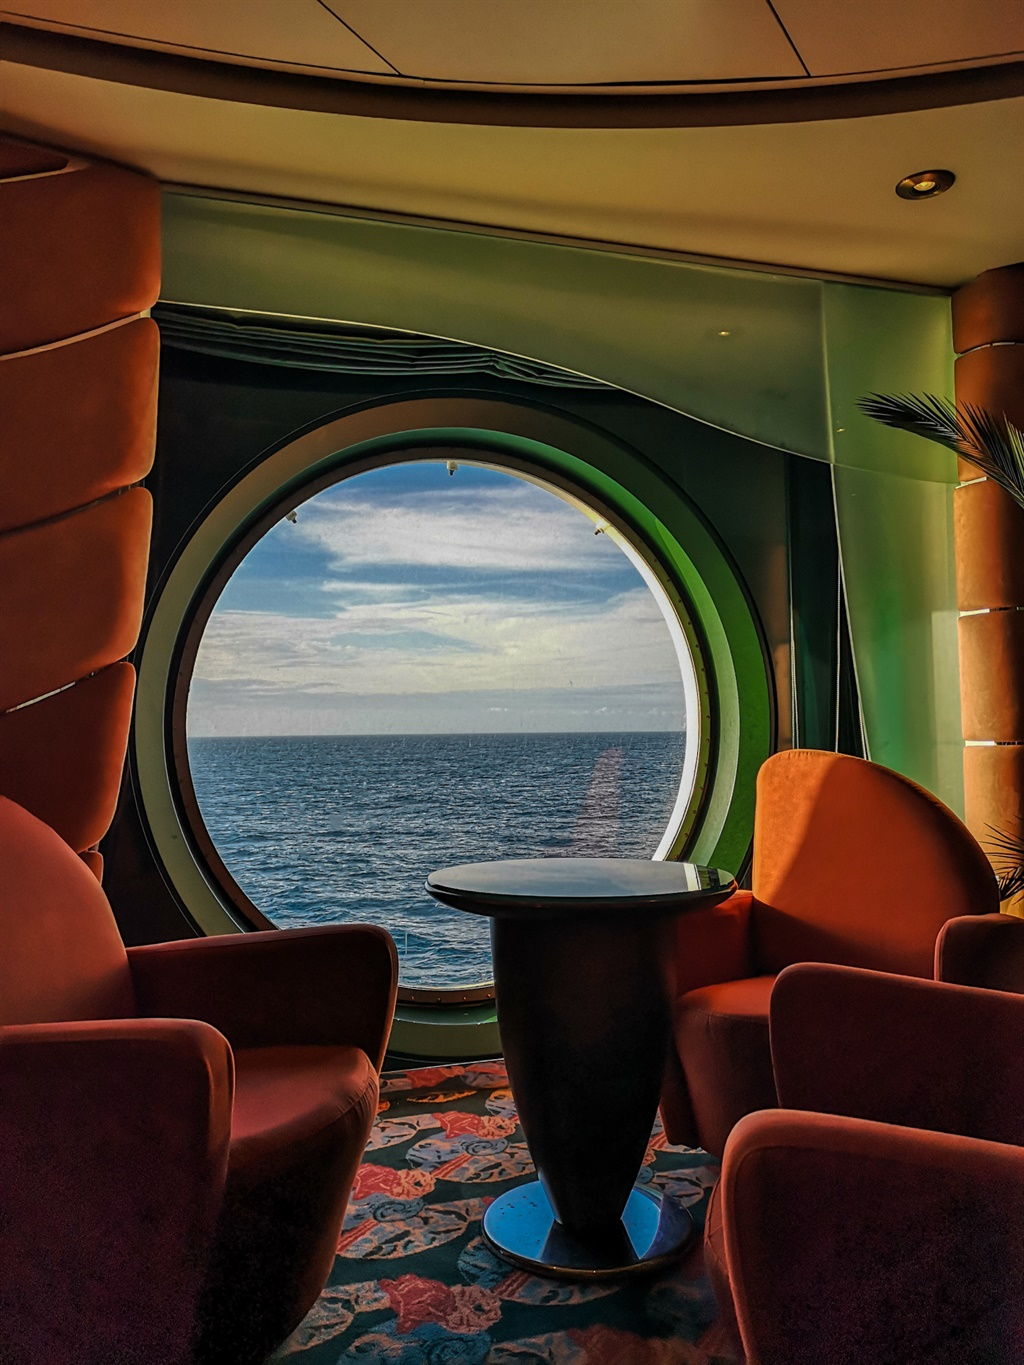 Cruise bar by boat window on sea